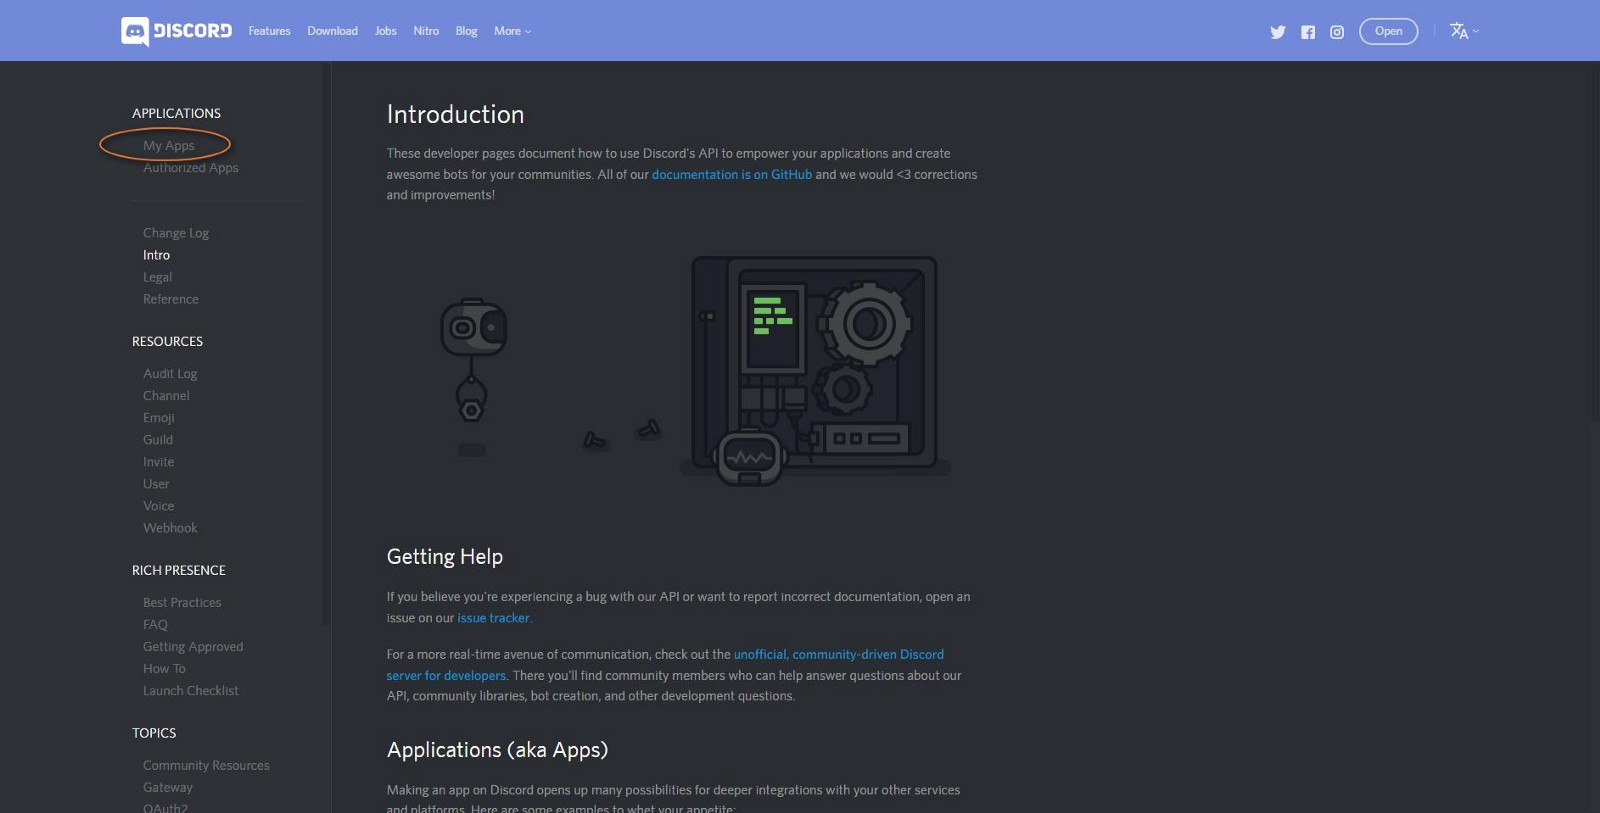 How To Use Fortnite Tracker Bot On Discord   Fortnite Free Agents